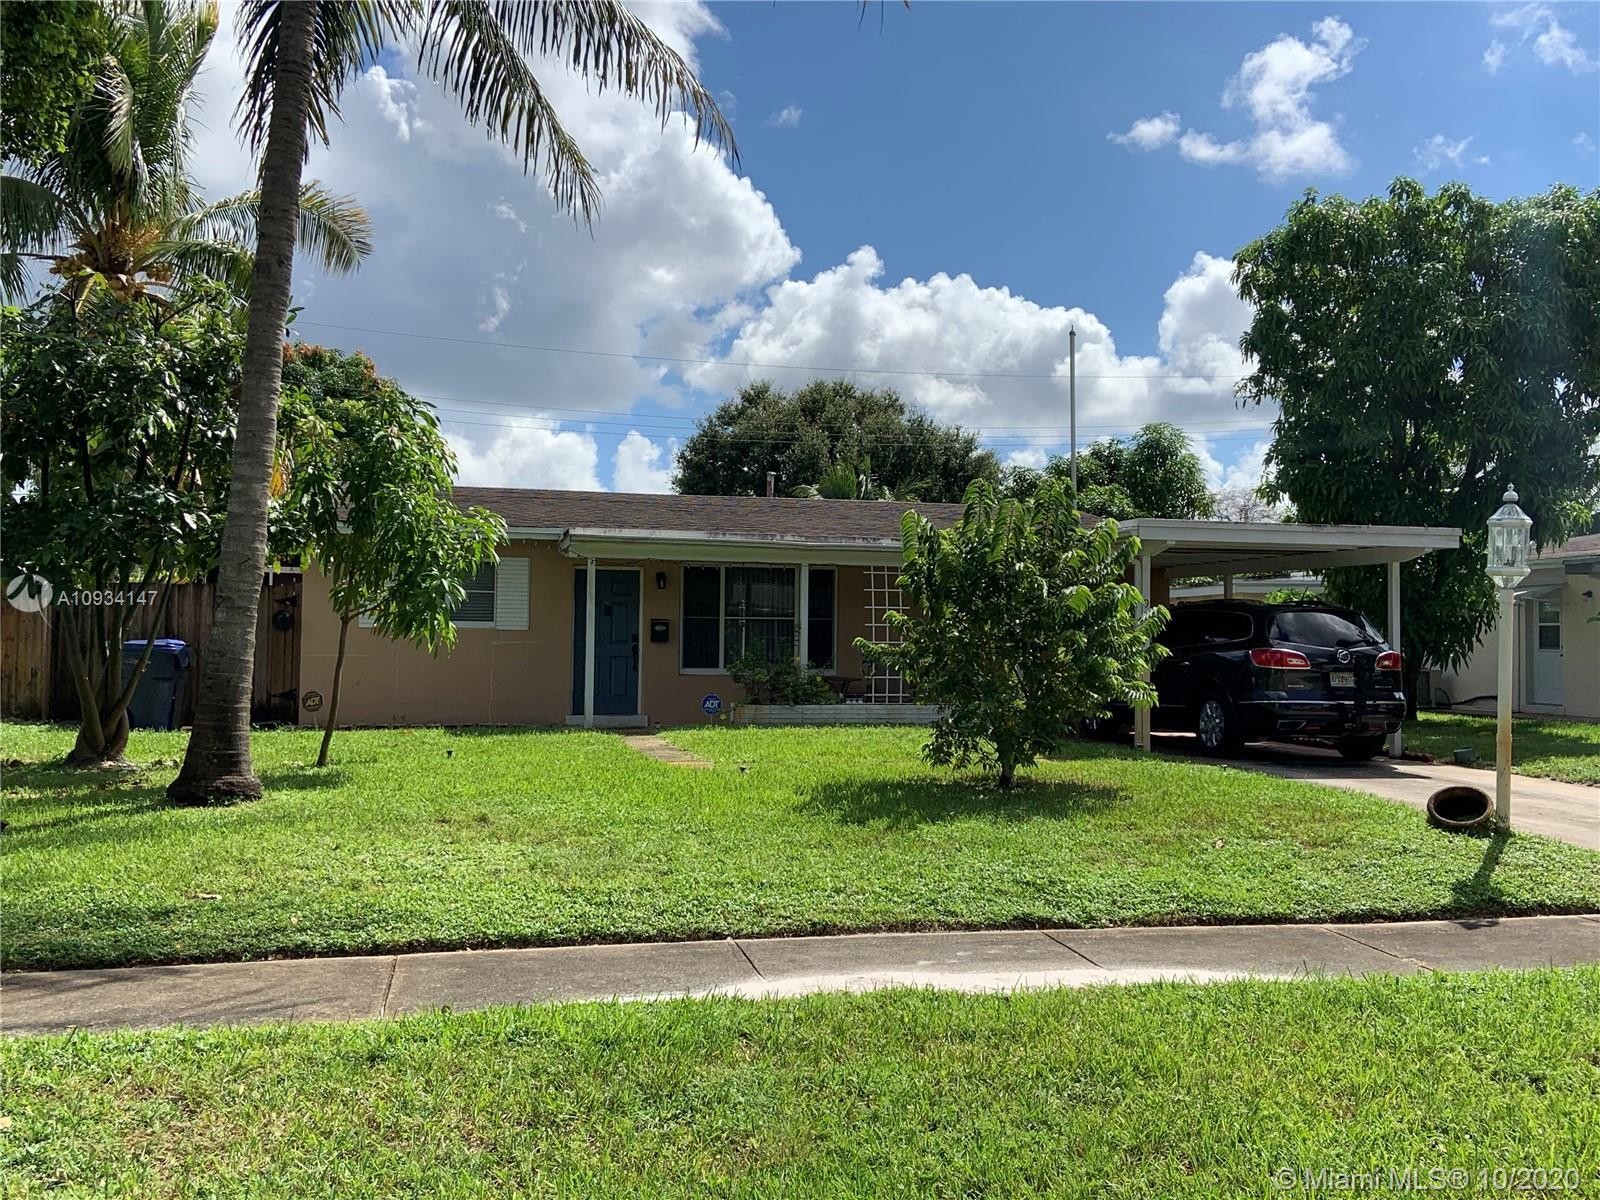 Charming home in Boulevard Heights with many upgrades. Impact windows and doors, ceramic tile floors